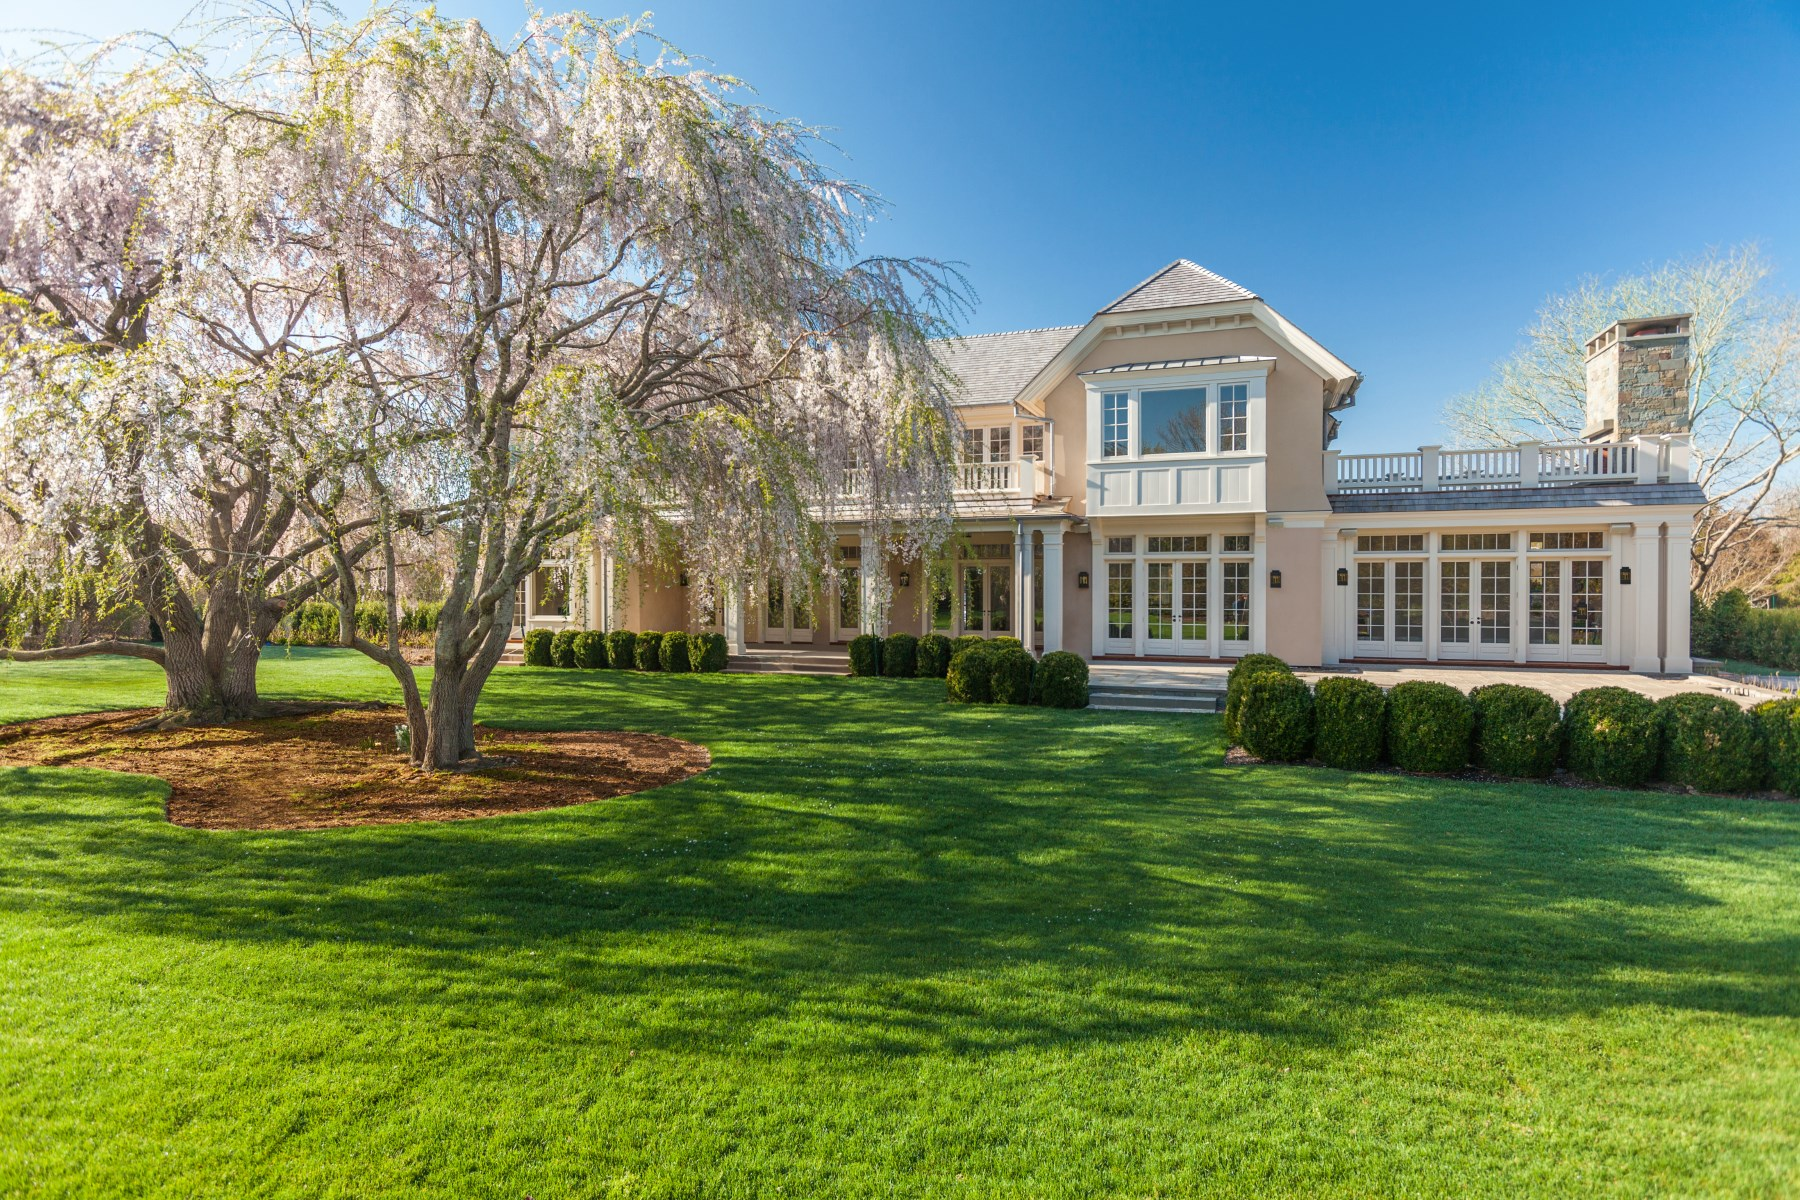 Single Family Home for Sale at Sagaponack South Estate Sagaponack South, Sagaponack, New York, 11962 United States